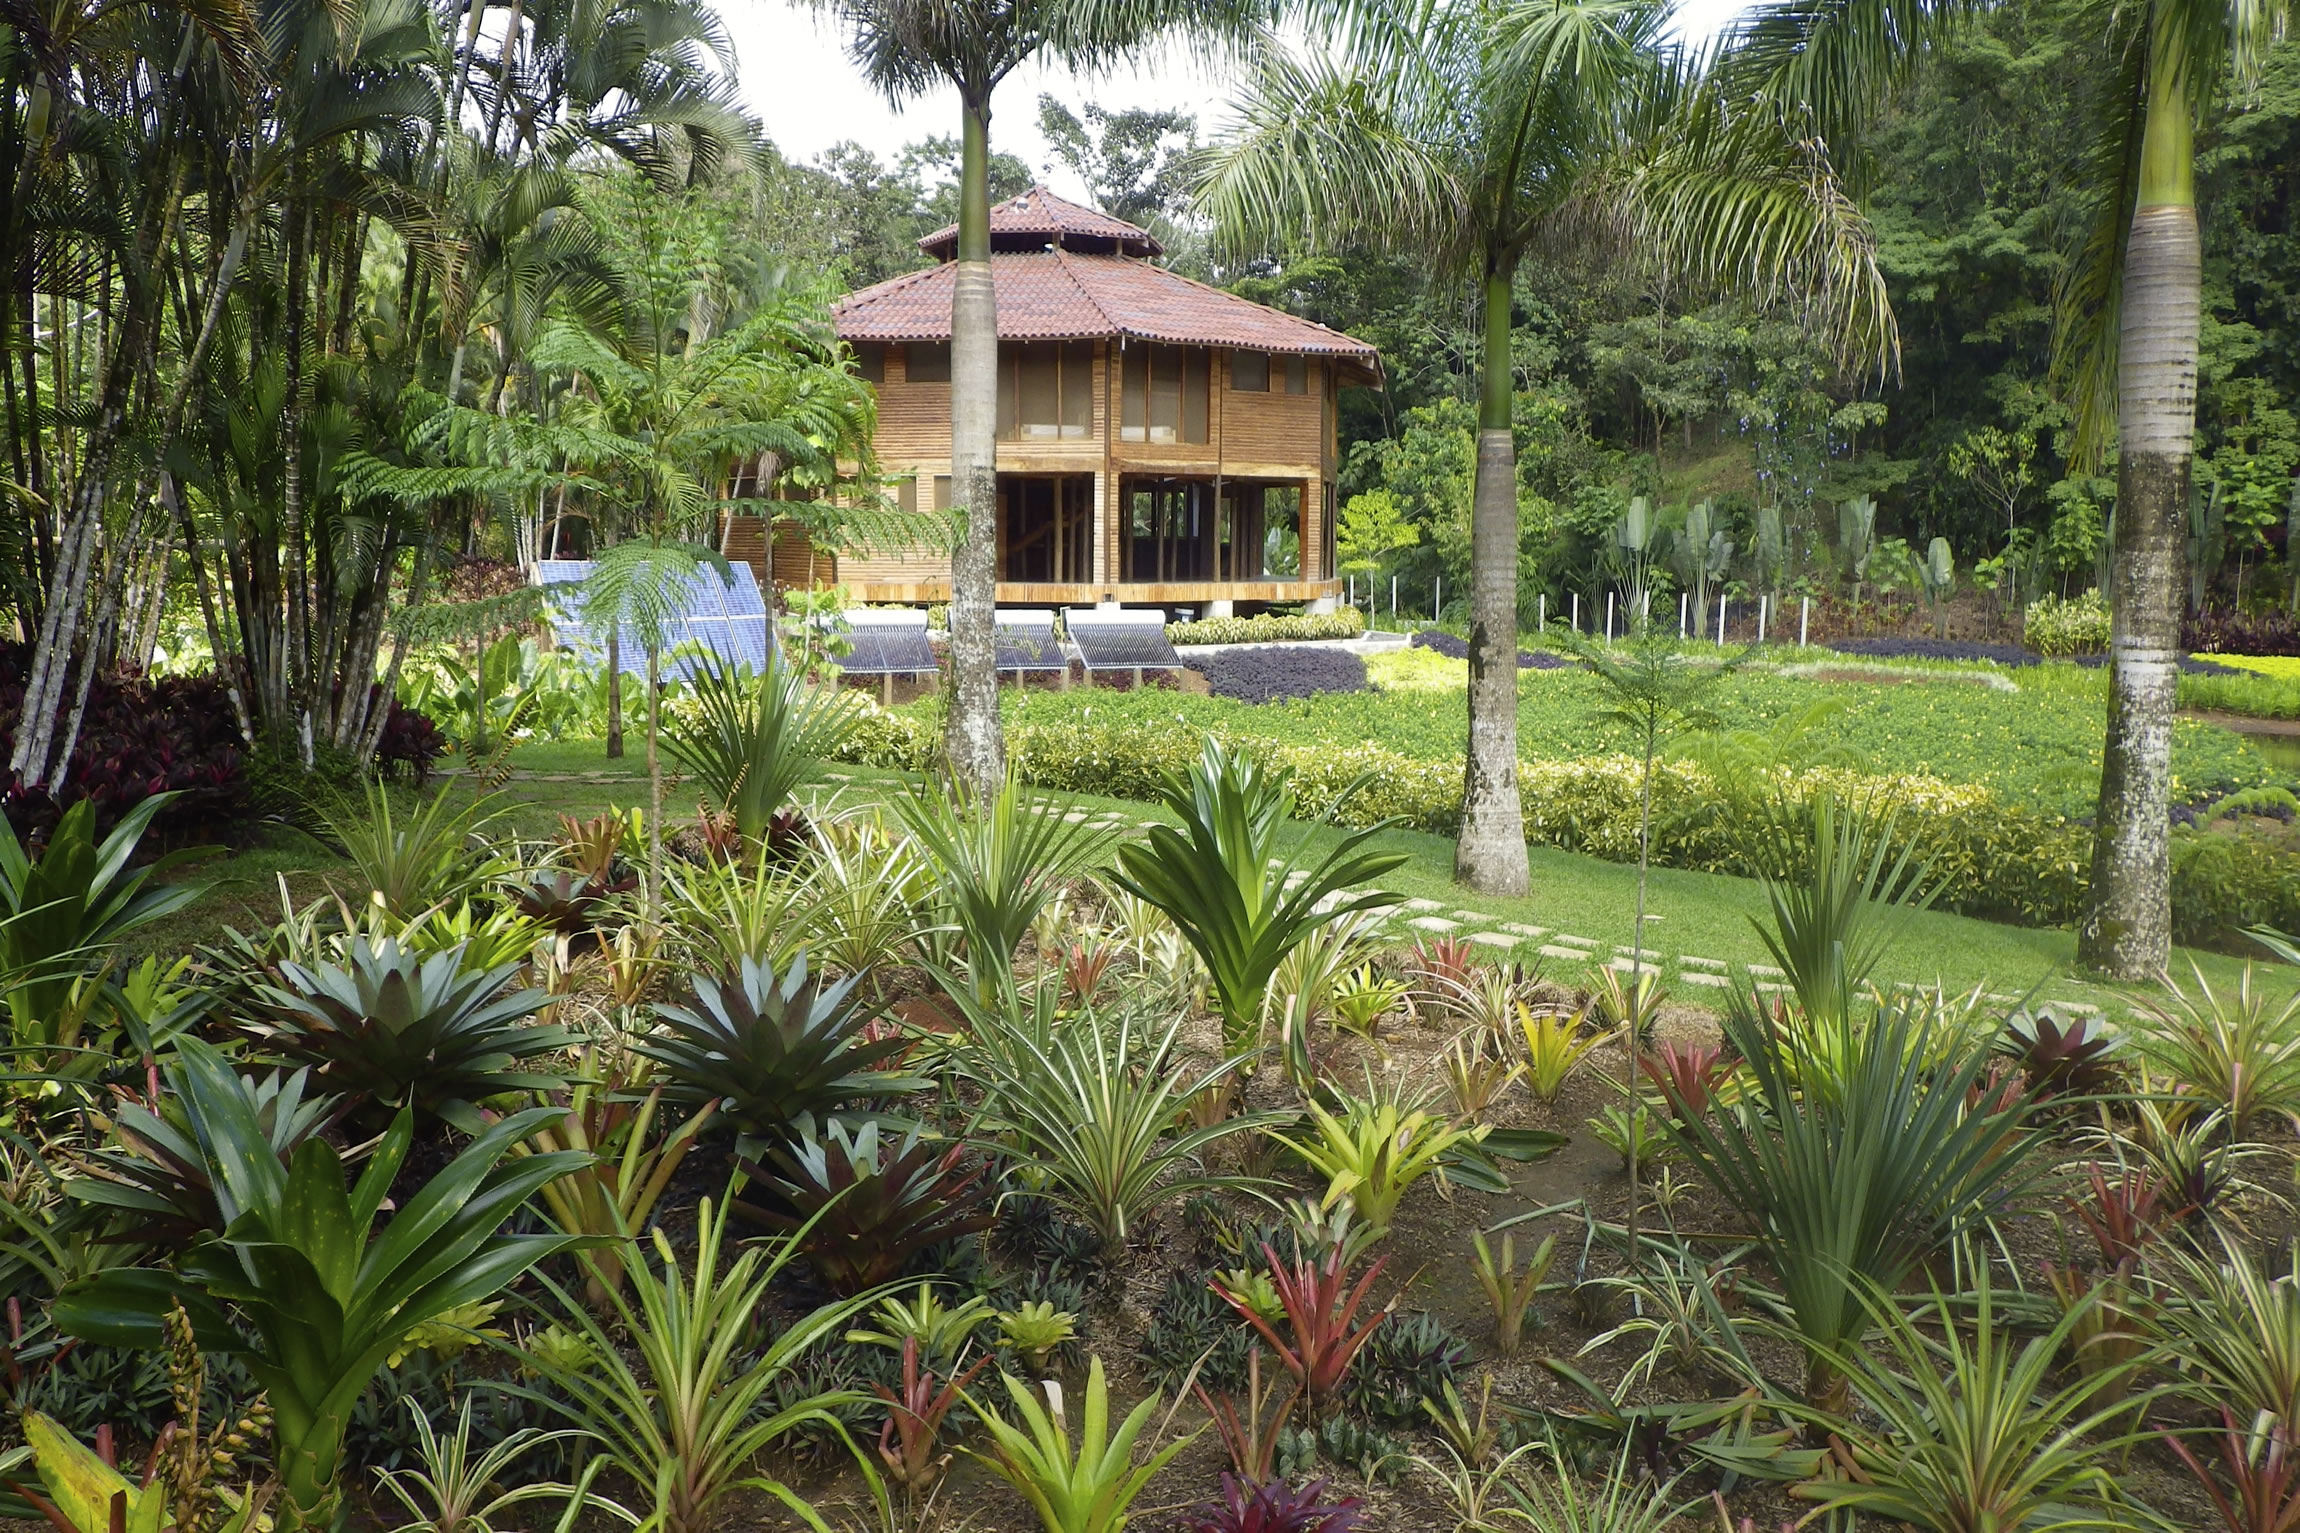 Costa-Rica-Holiday-Tours-Macaw-Lodge-Exterior-Lodge